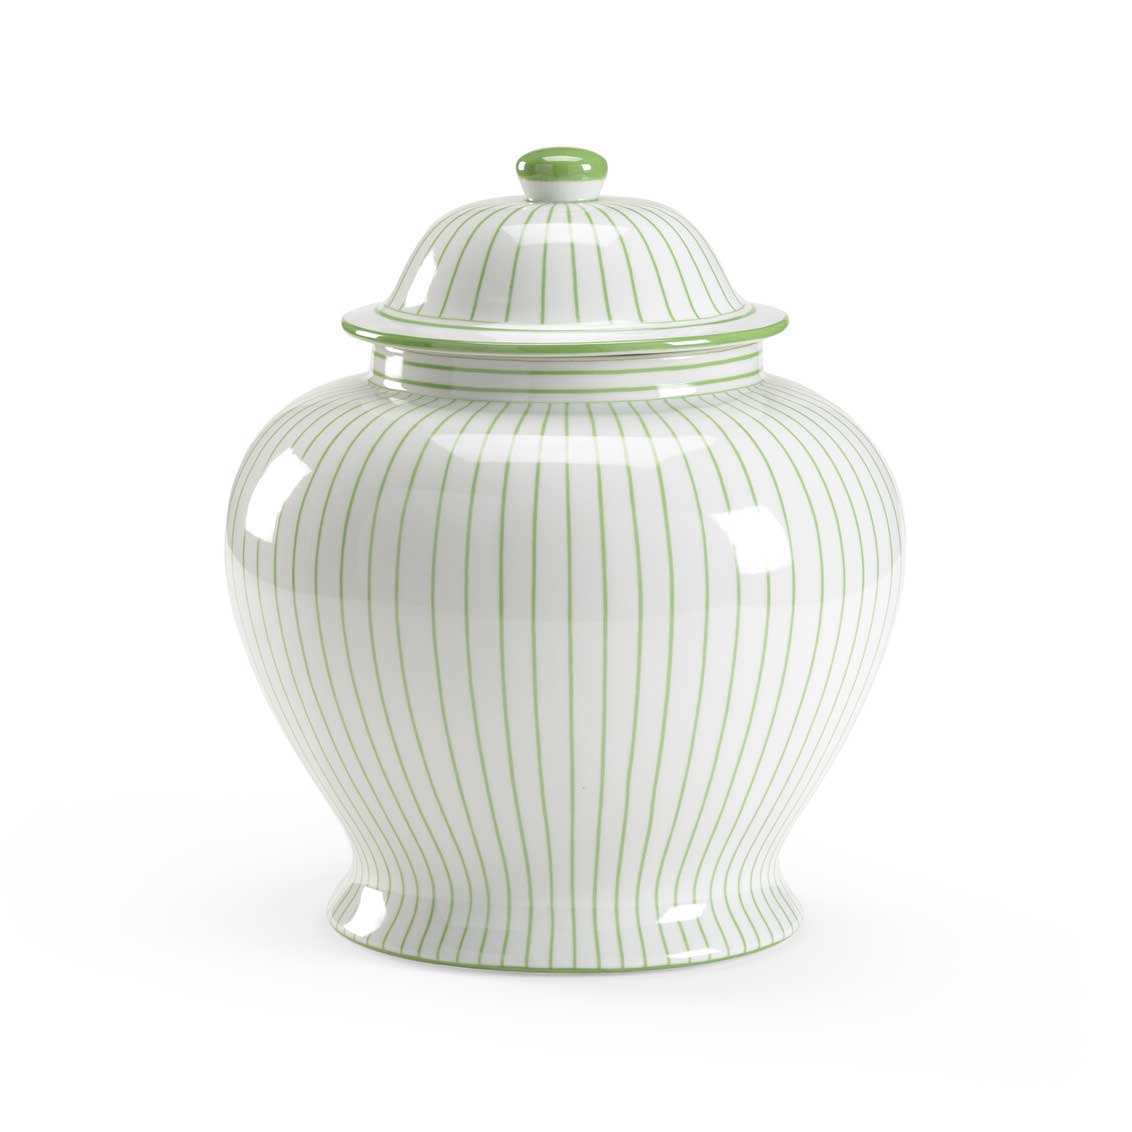 Castle Urn Green Porcelain Vase Ginger Jar Chelsea House